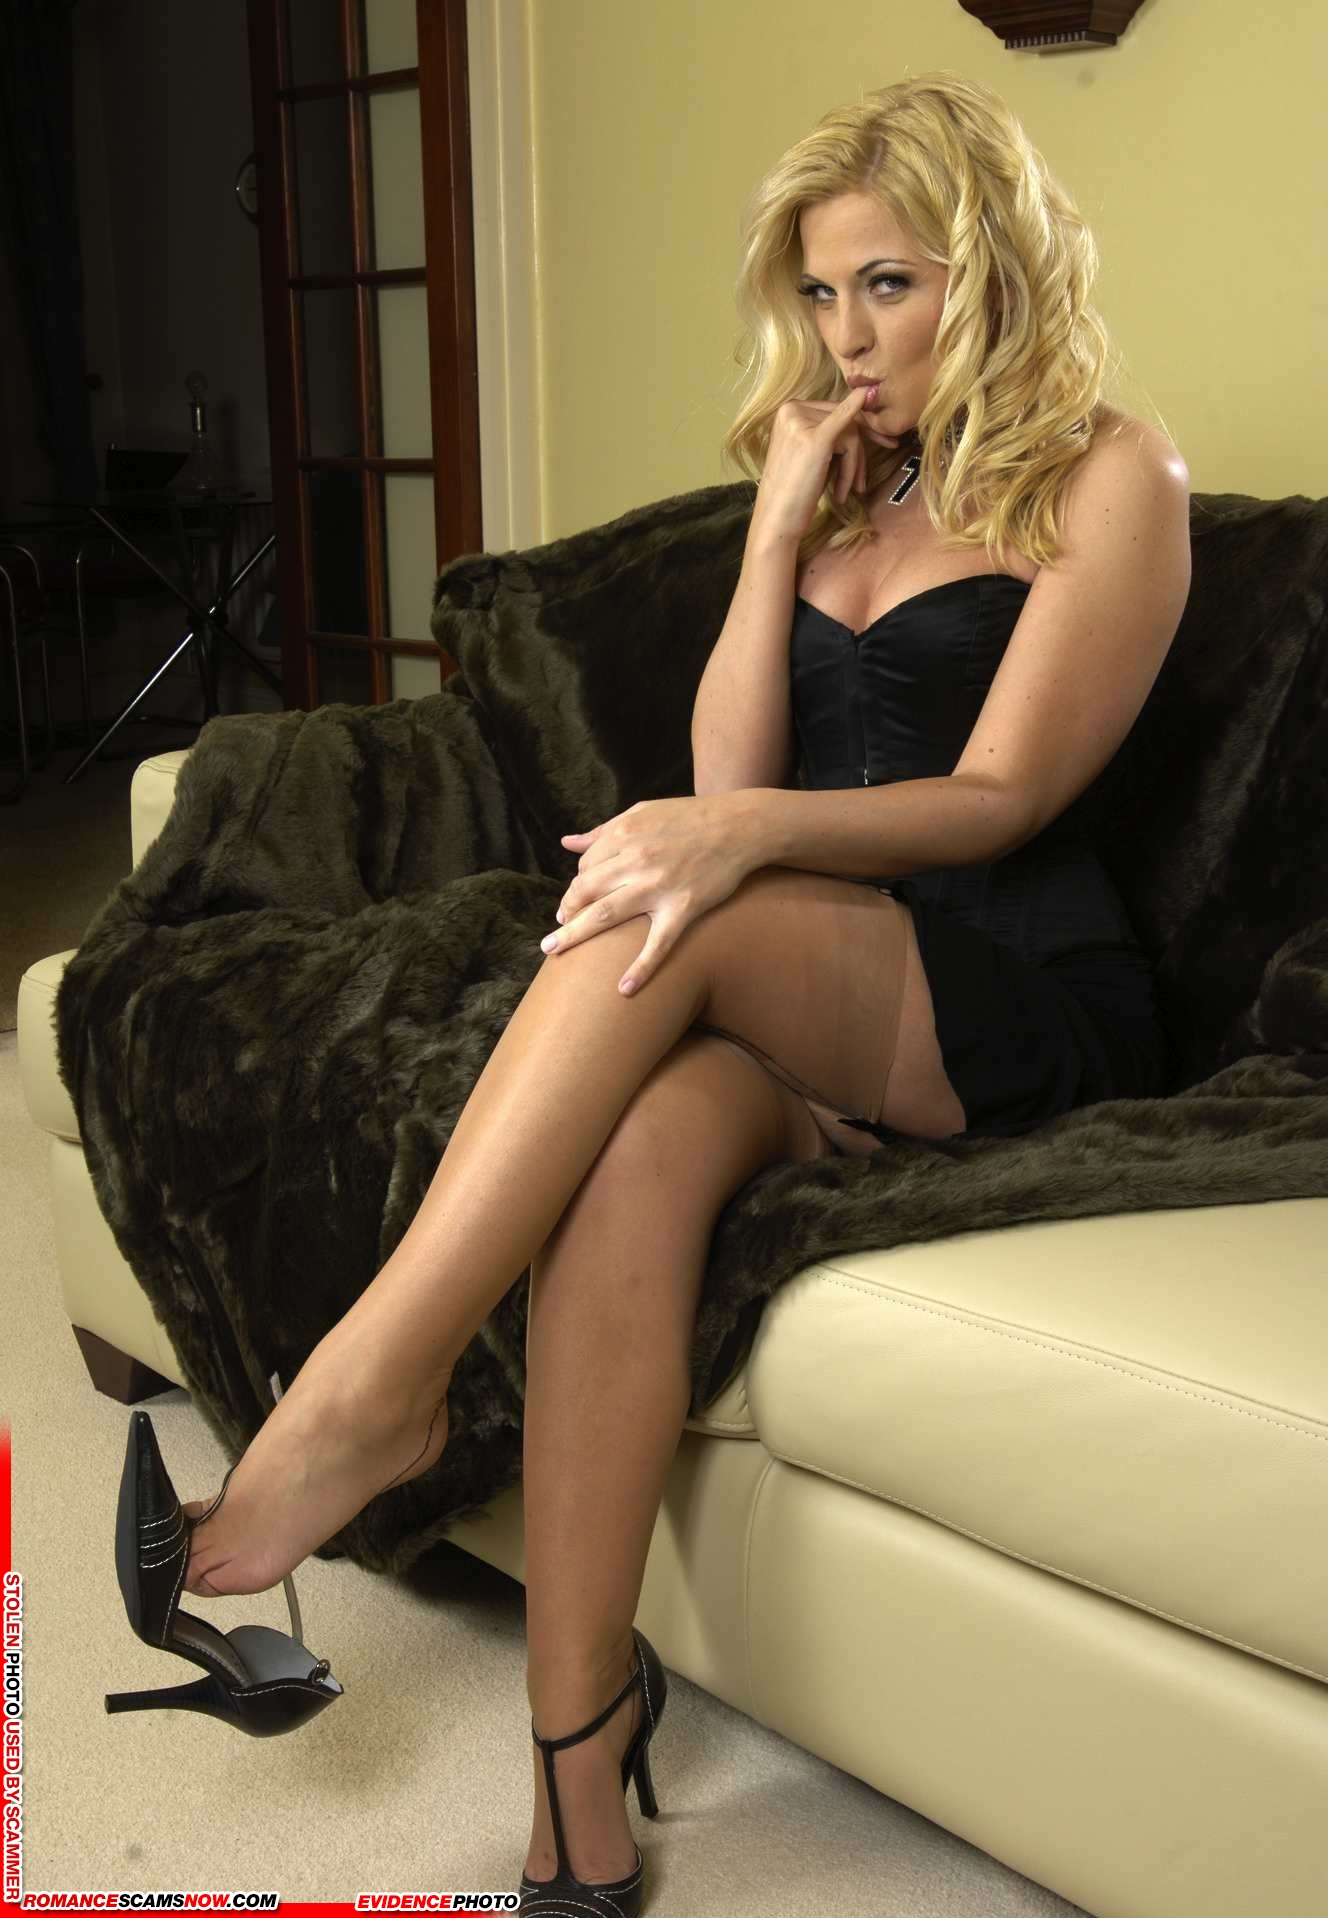 xxx videos clips download with turrent